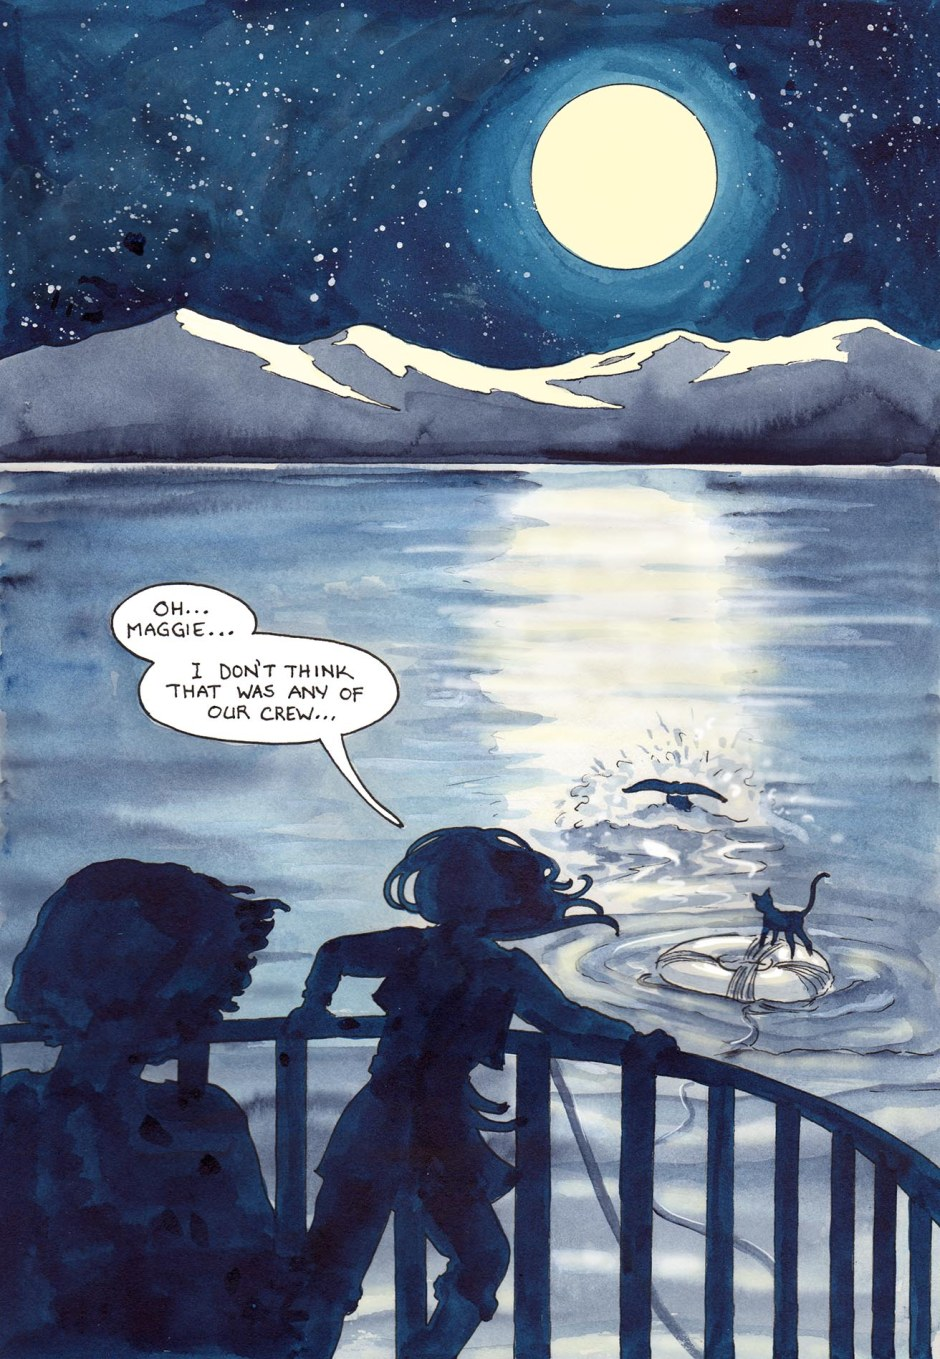 Page 66 — The Curious Case of the Moonlight Swimmer!